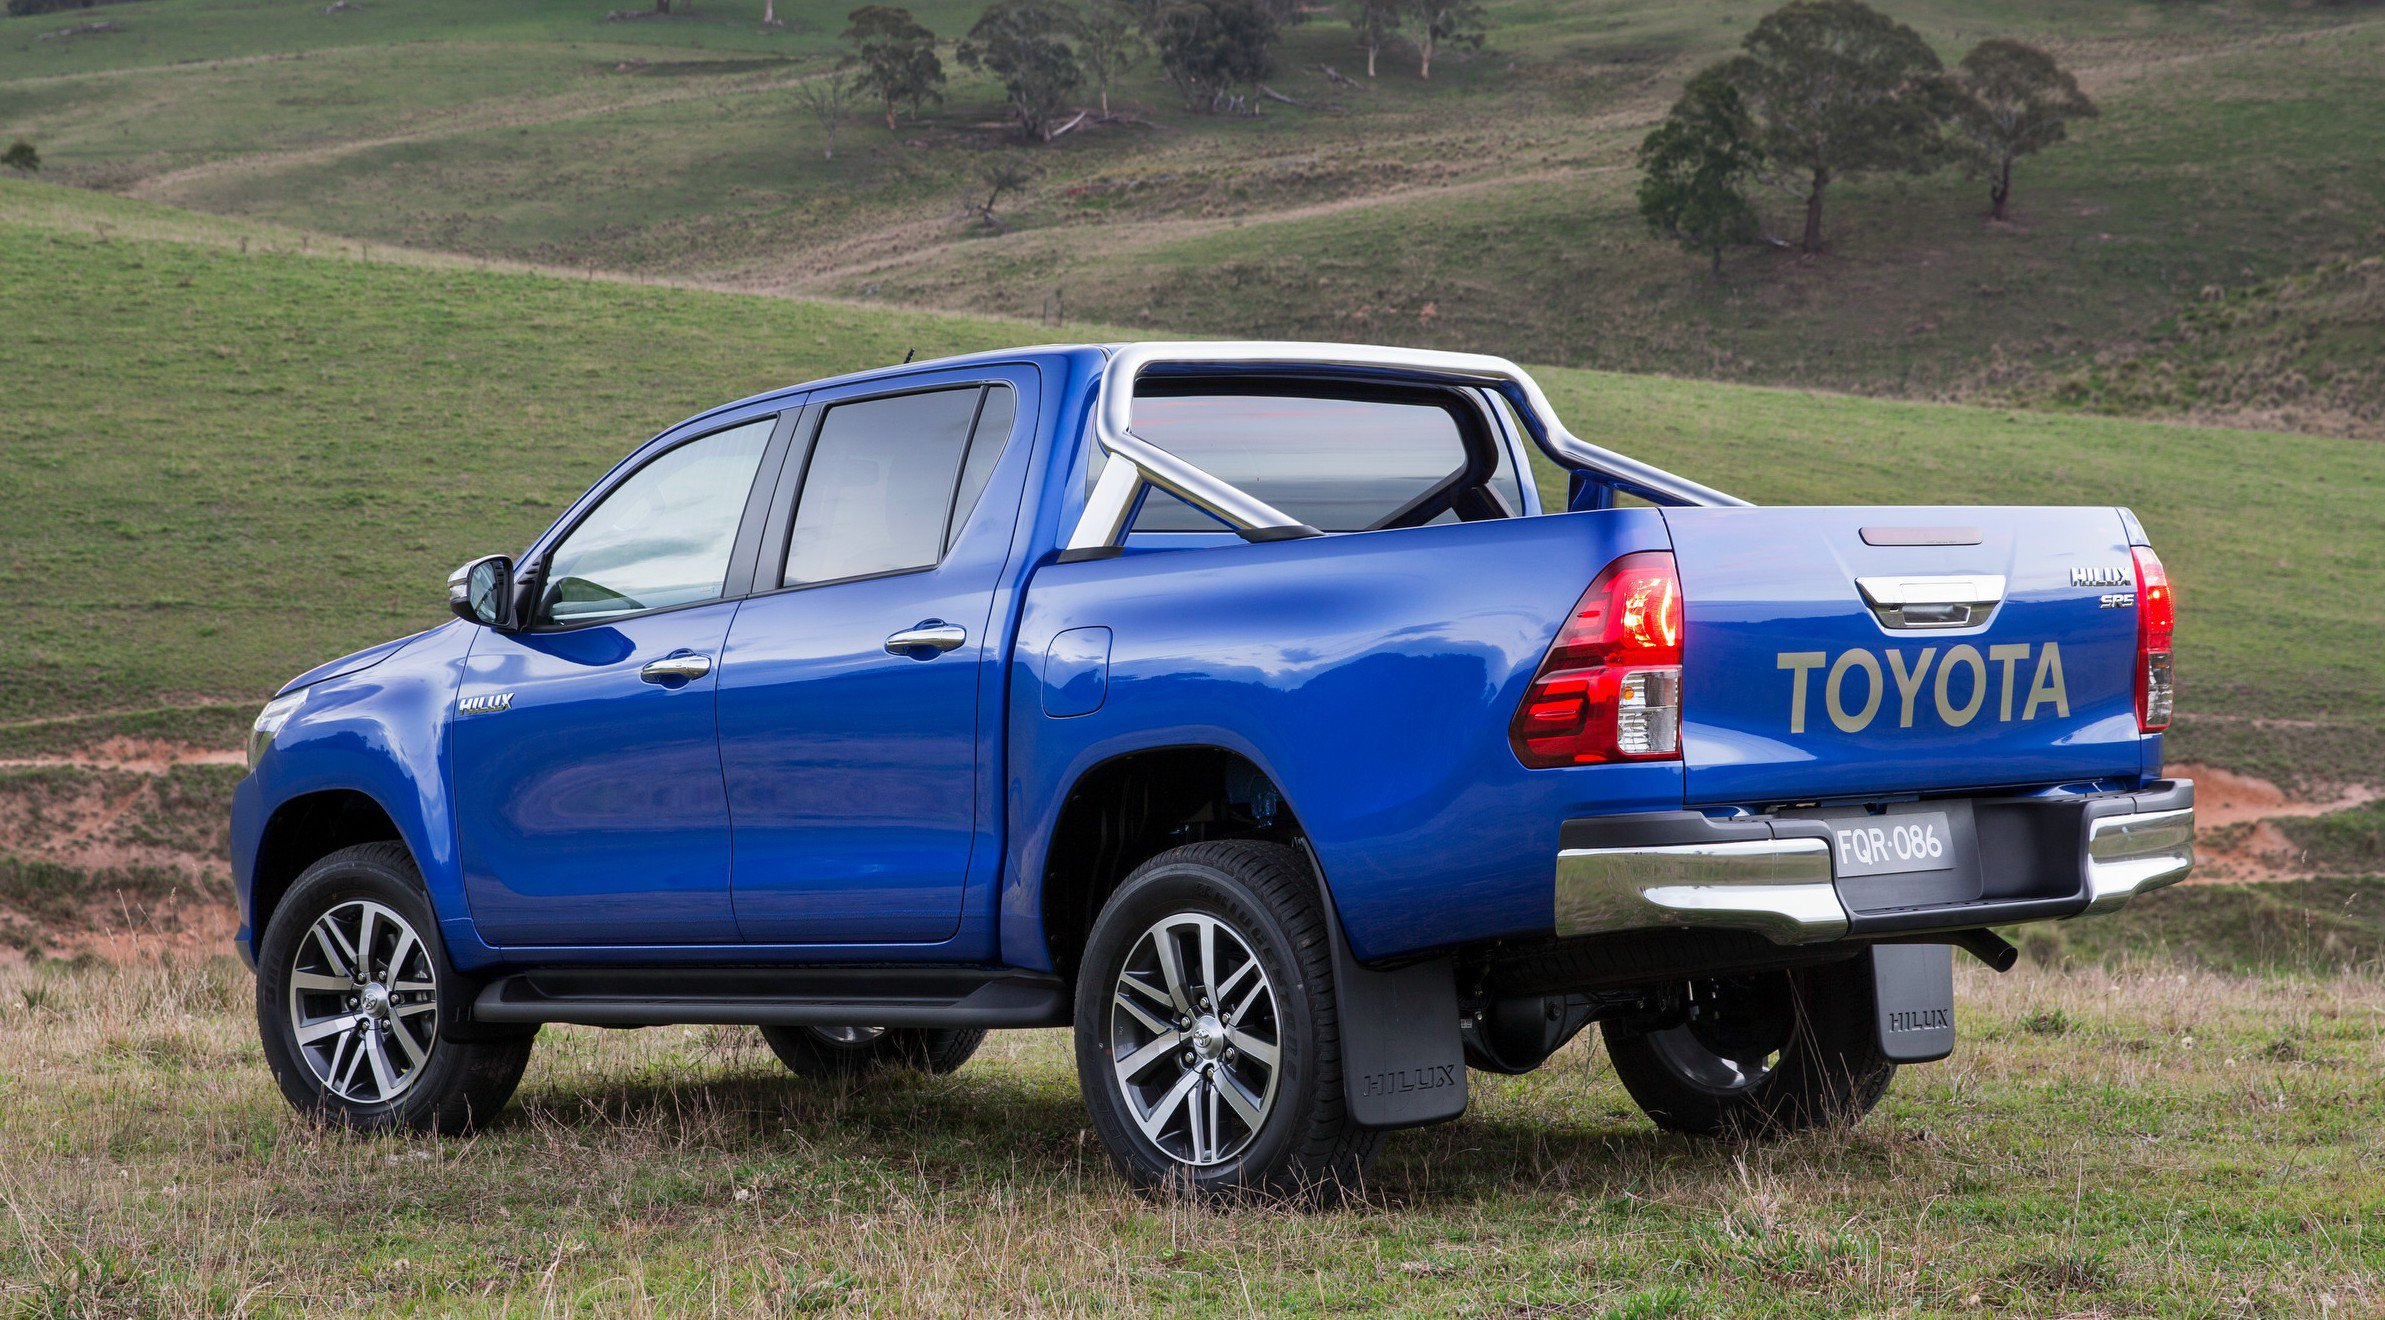 New Toyota Hilux Ute Review 2016 — Auto Expert by John